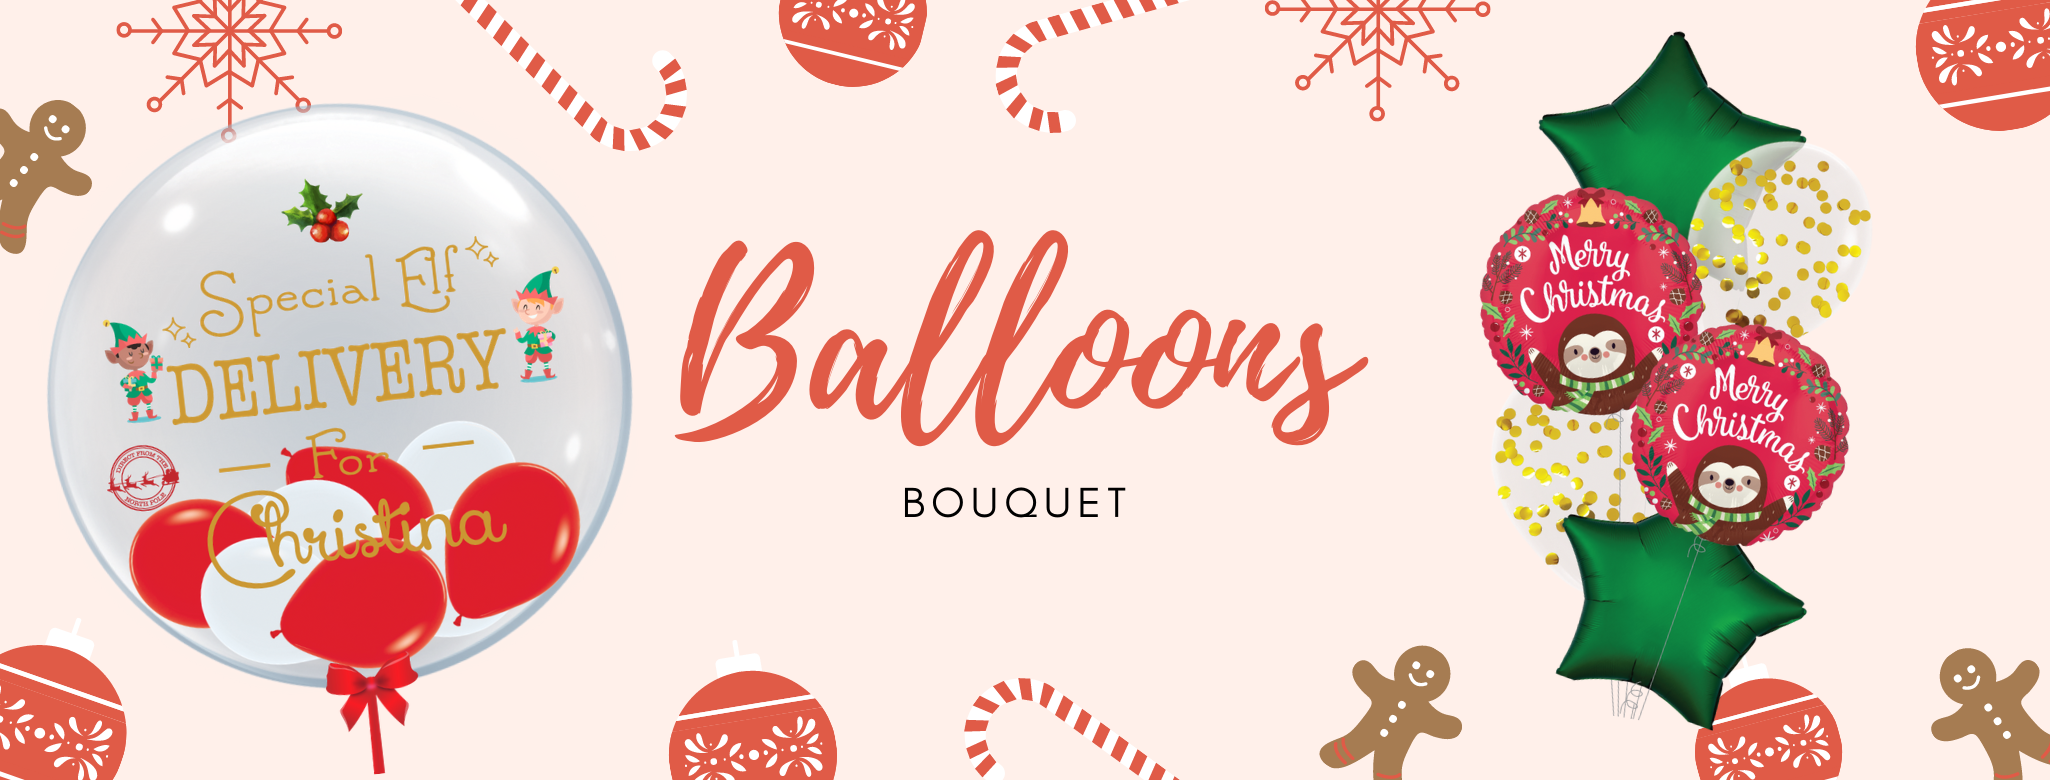 Christmas Balloons Bouquet Delivery islandwide Singapore